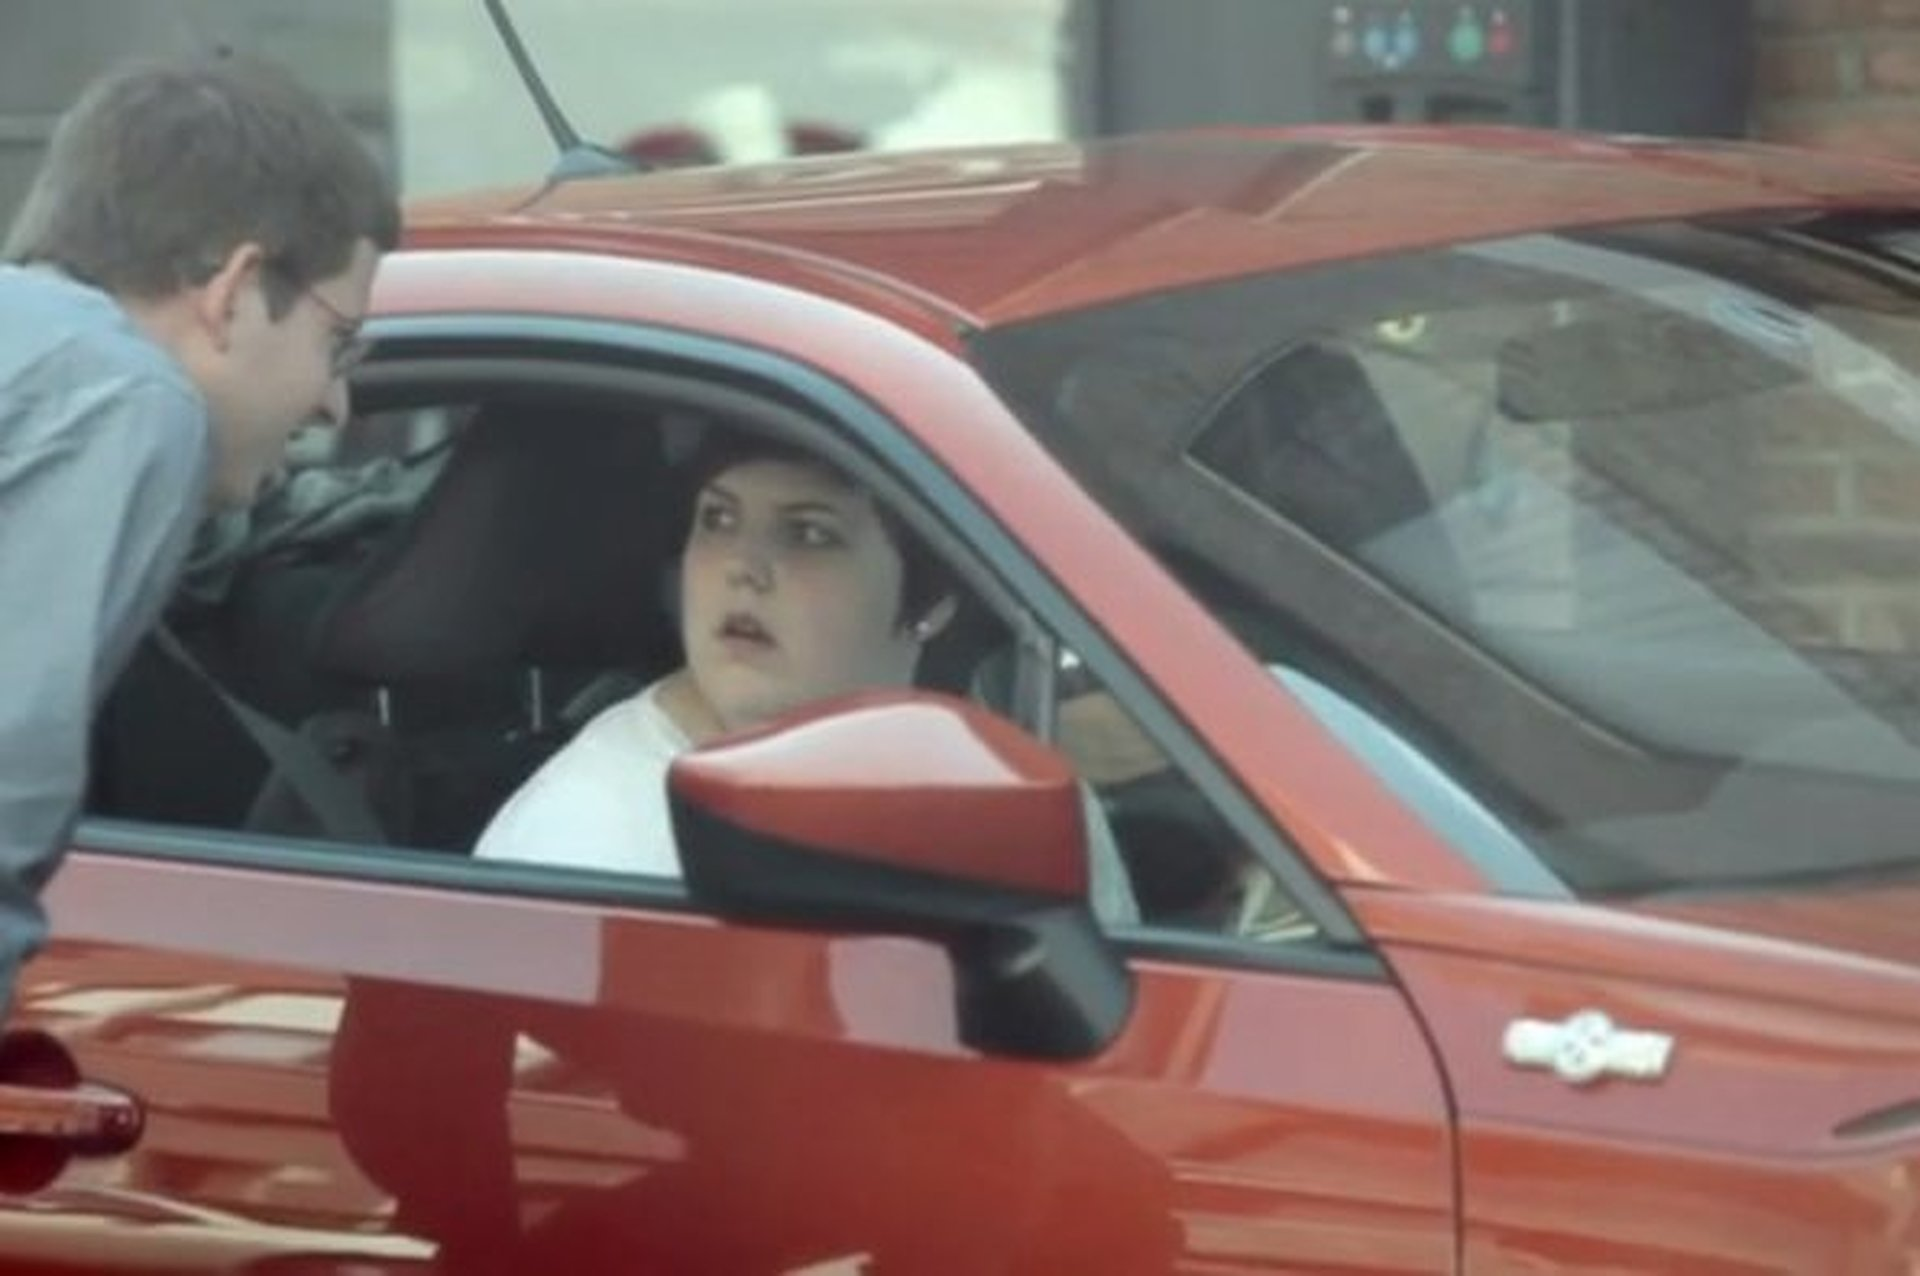 Husbands; Don't Buy A Toyota GT86 Without Your Wife's Permission